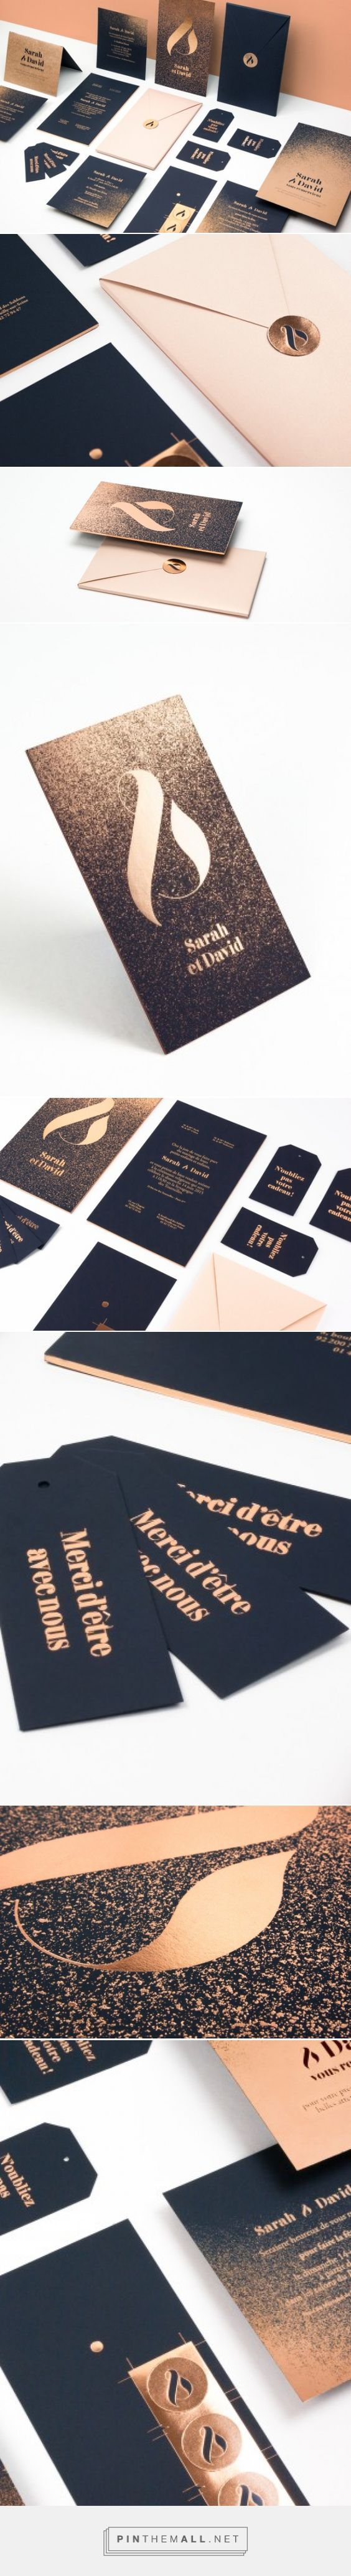 Black and Gold Wedding Invitation Set by